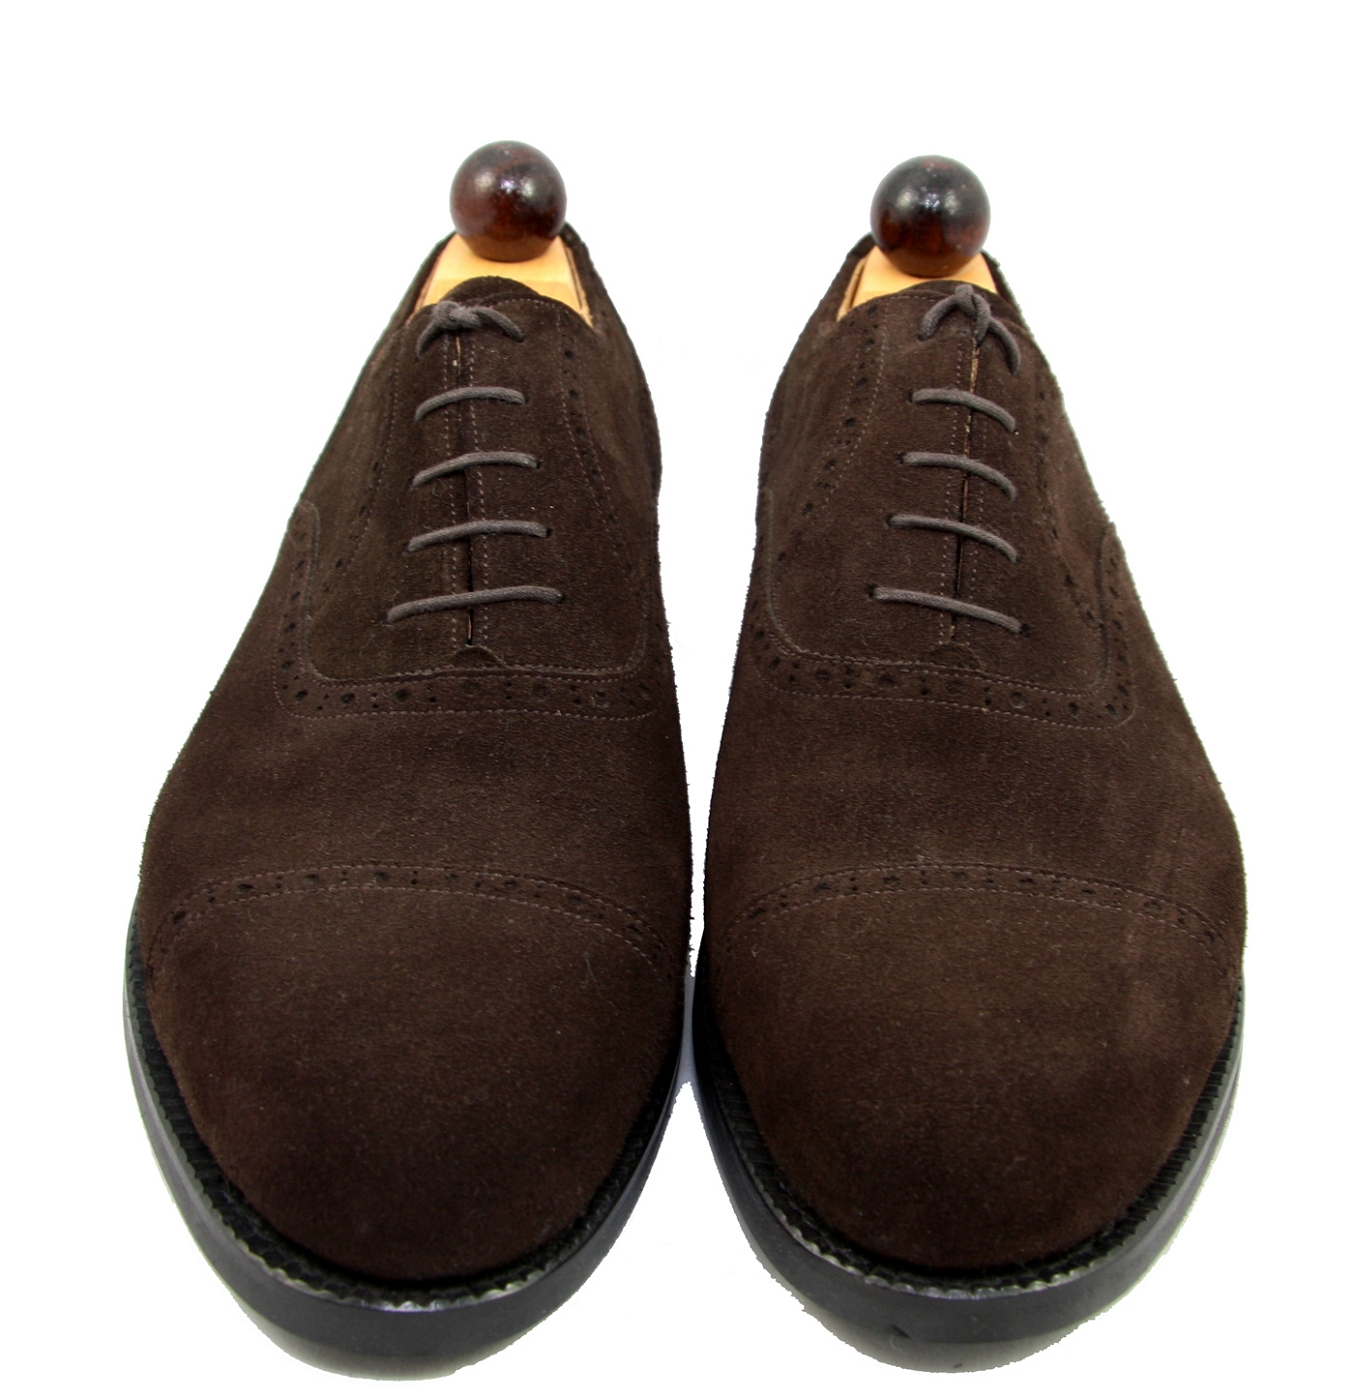 Vass Shoes 1065 Brown Suede Size 42